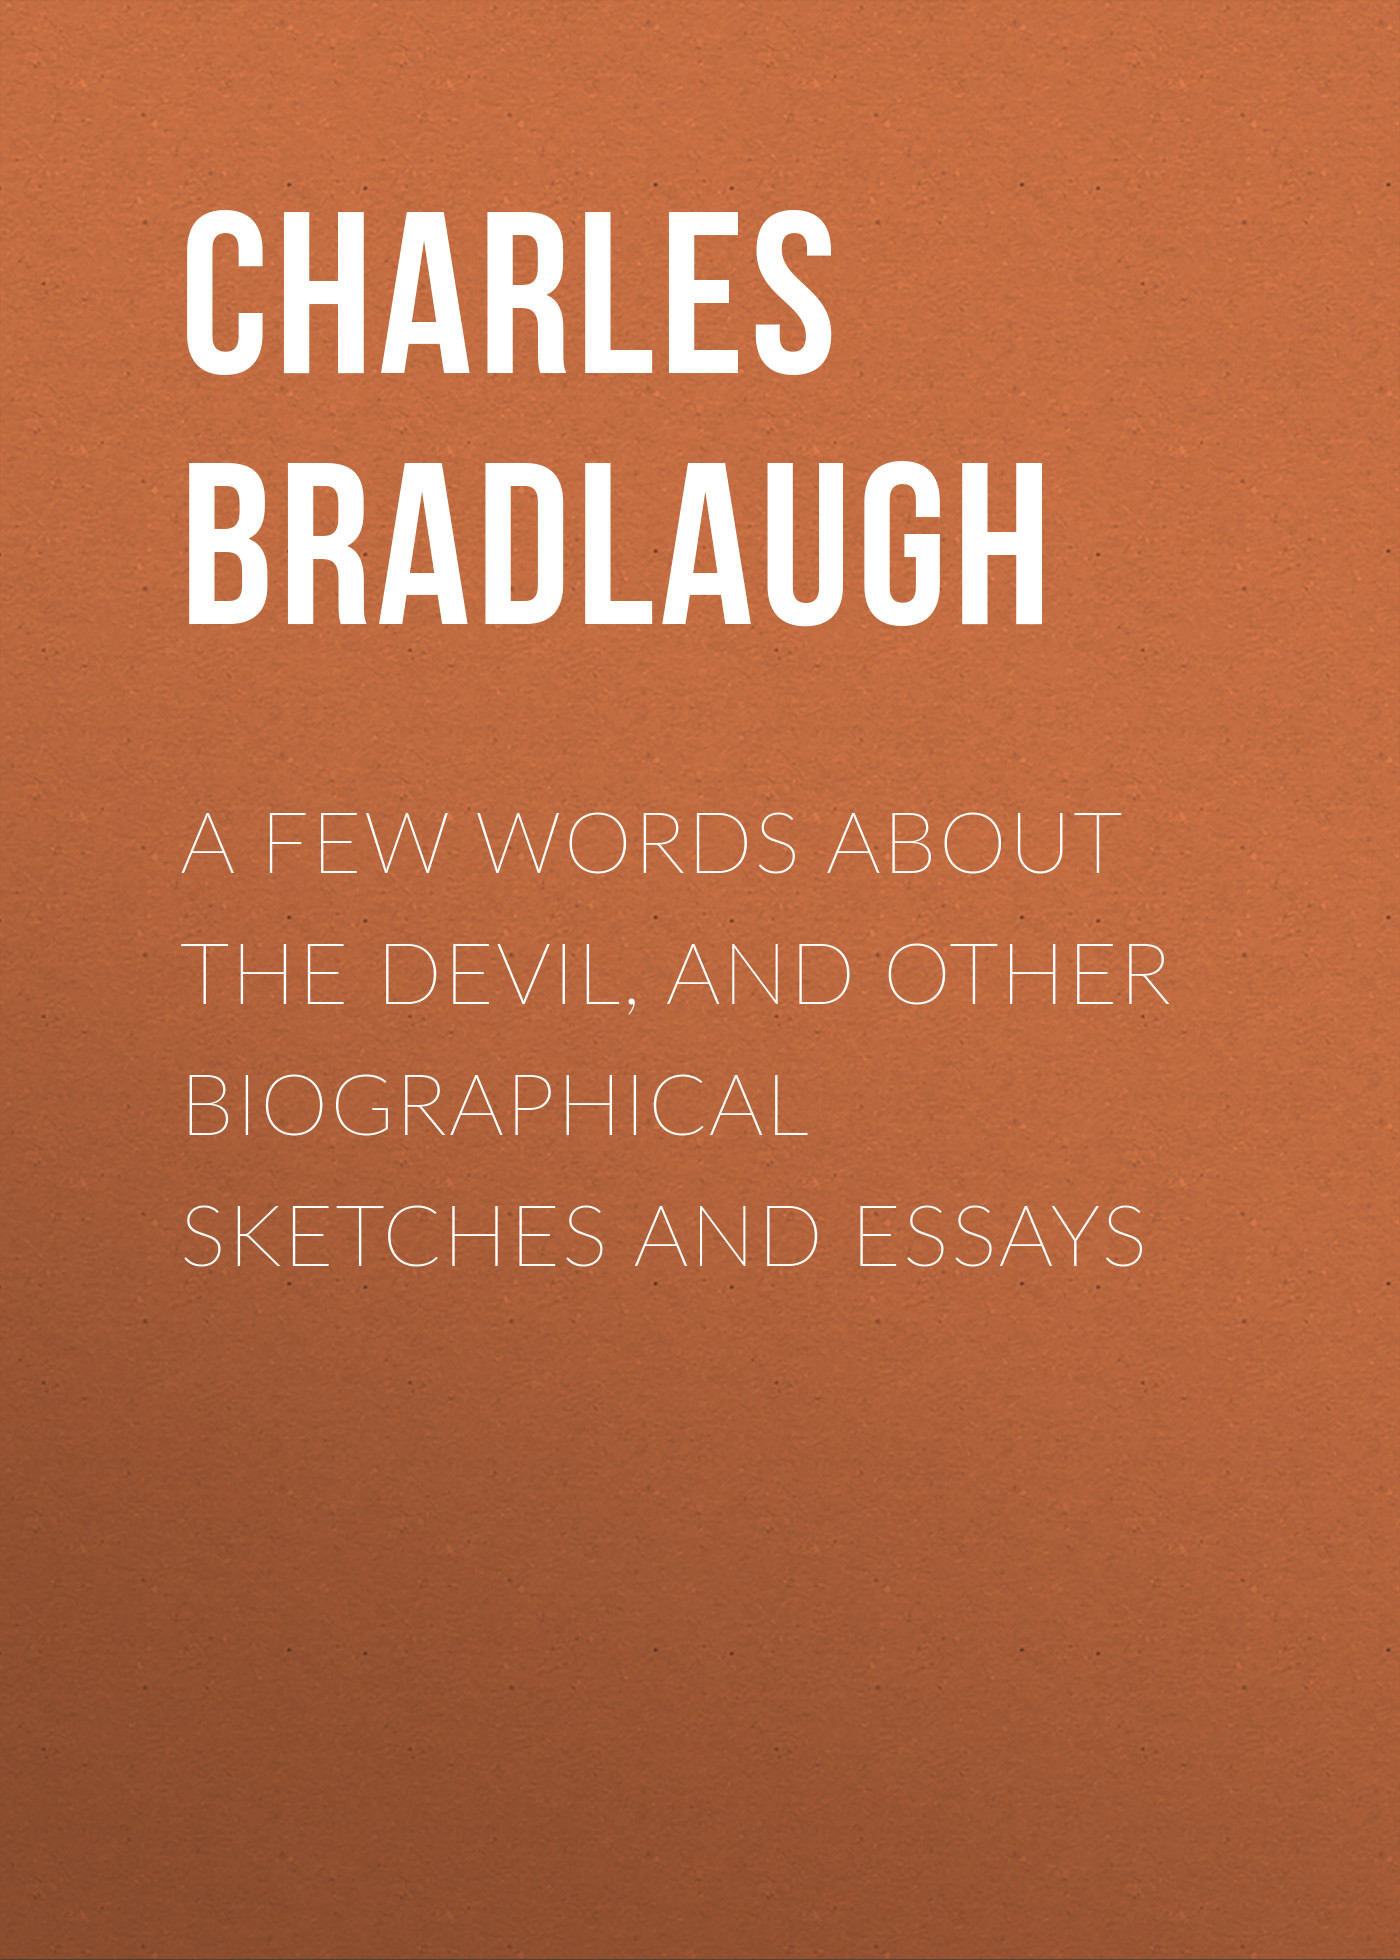 Bradlaugh Charles A Few Words About the Devil, and Other Biographical Sketches and Essays trustfire tr j2 diving flashlight 1000 lm xml l2 4 mode led flashlight